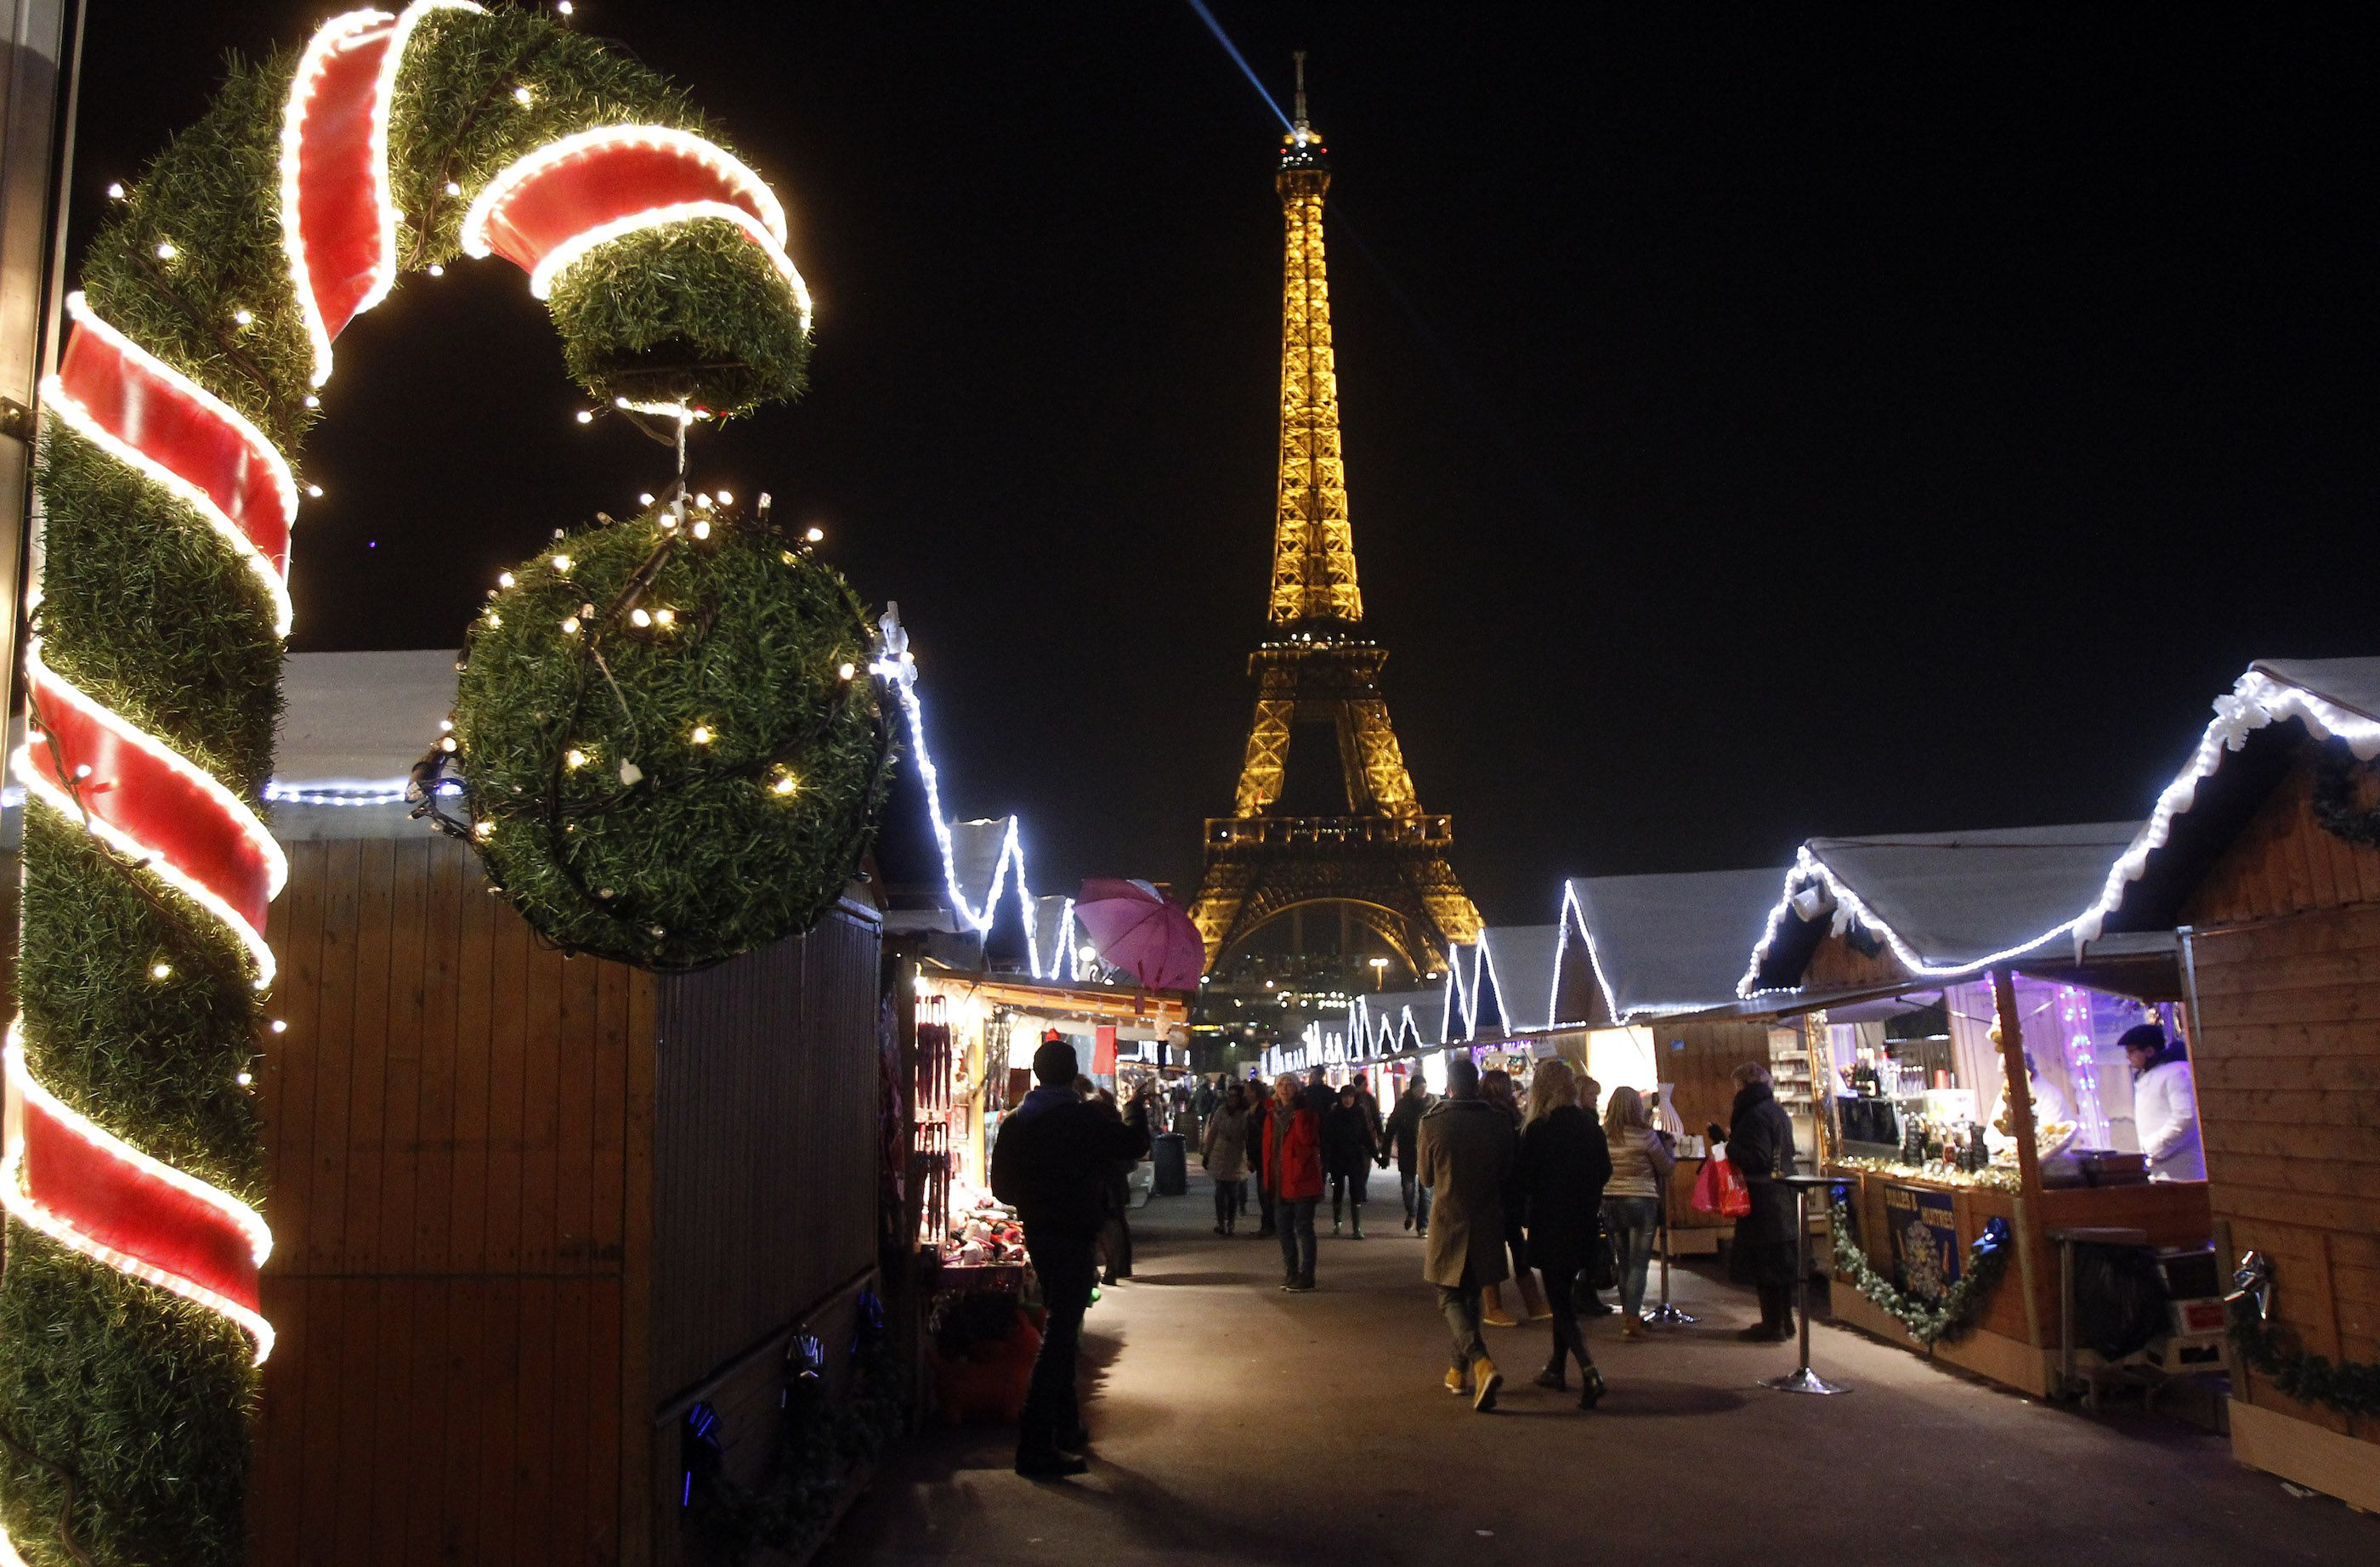 The Best Paris Christmas Markets for 2018 and 2019